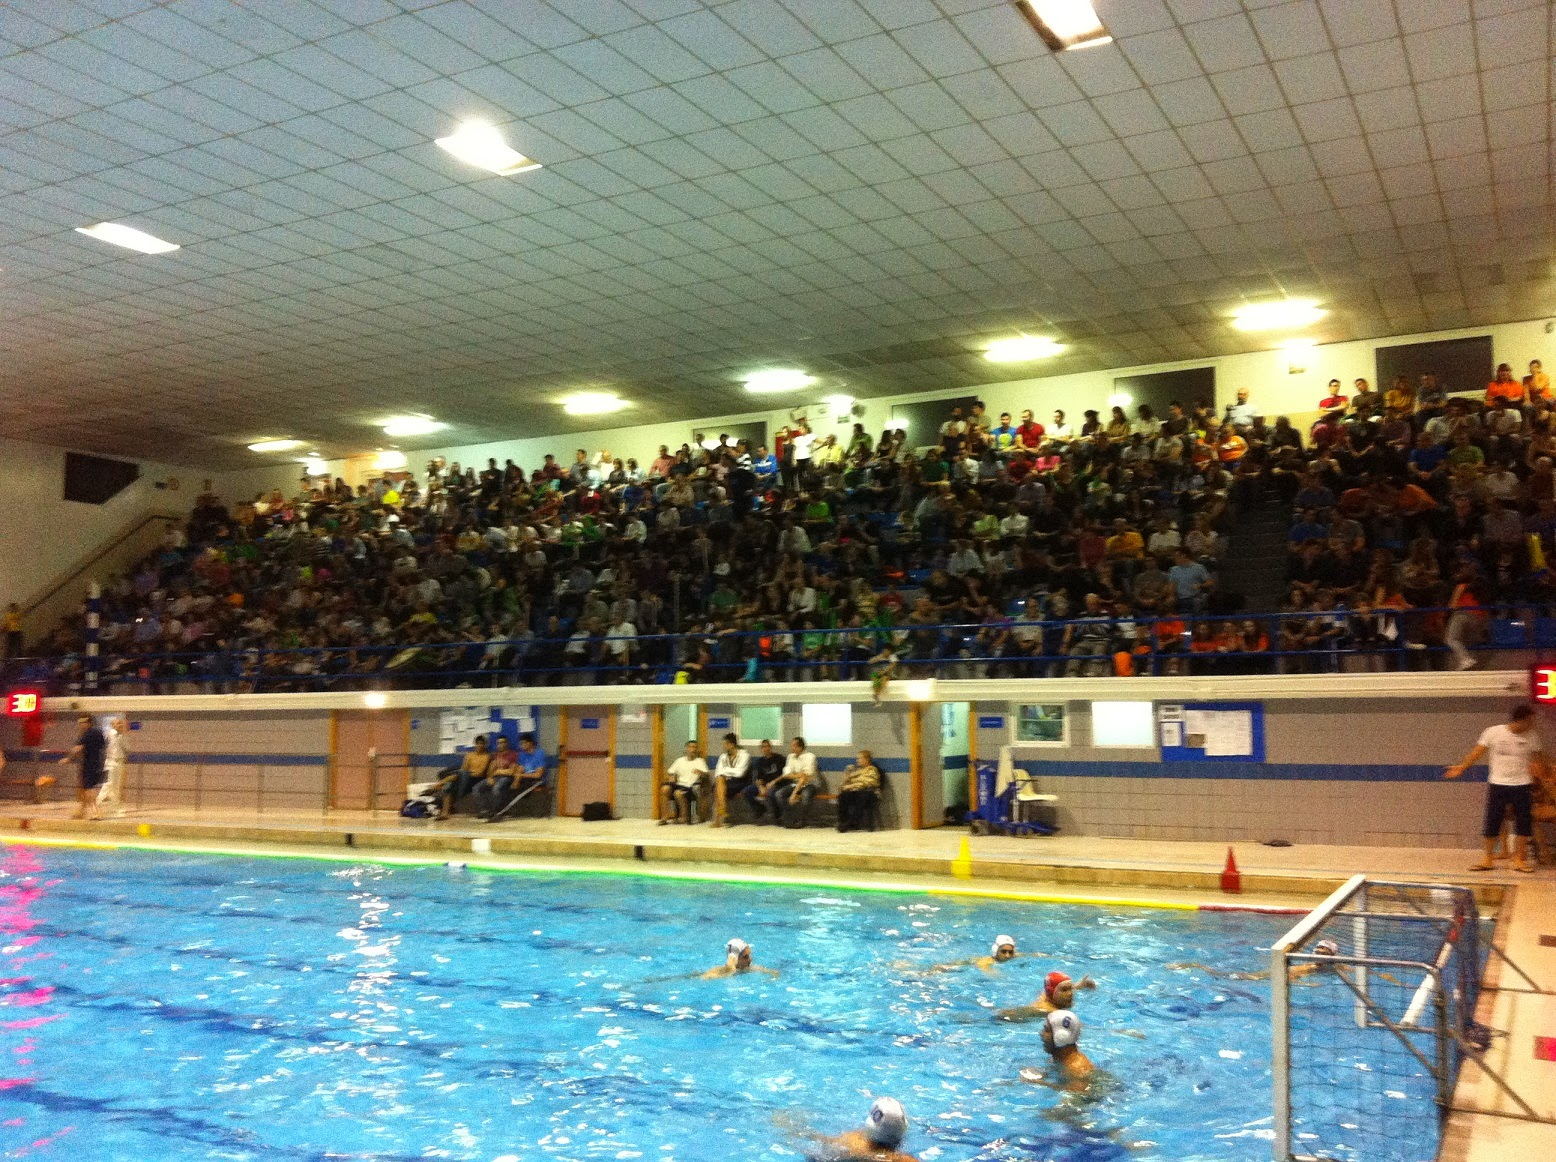 Rbitros de waterpolo noticia de ultima hora la for Piscina municipal mataro